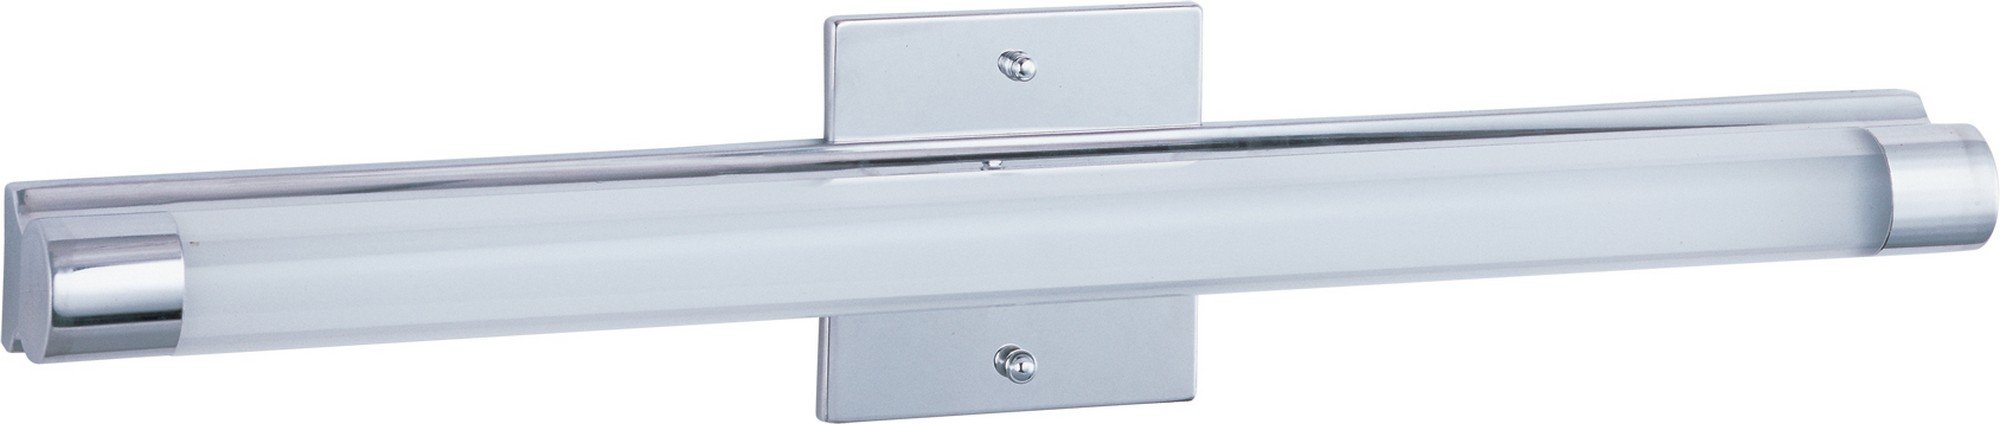 ET2 E22392-10PC Wand LED Bath Vanity, Polished Chrome Finish, Clear/White Glass, PCB LED Bulb, 48W Max., Dry Safety Rated, 2900K Color Temp., Standard Dimmable, Vinyl Shade Material, 800 Rated Lumens